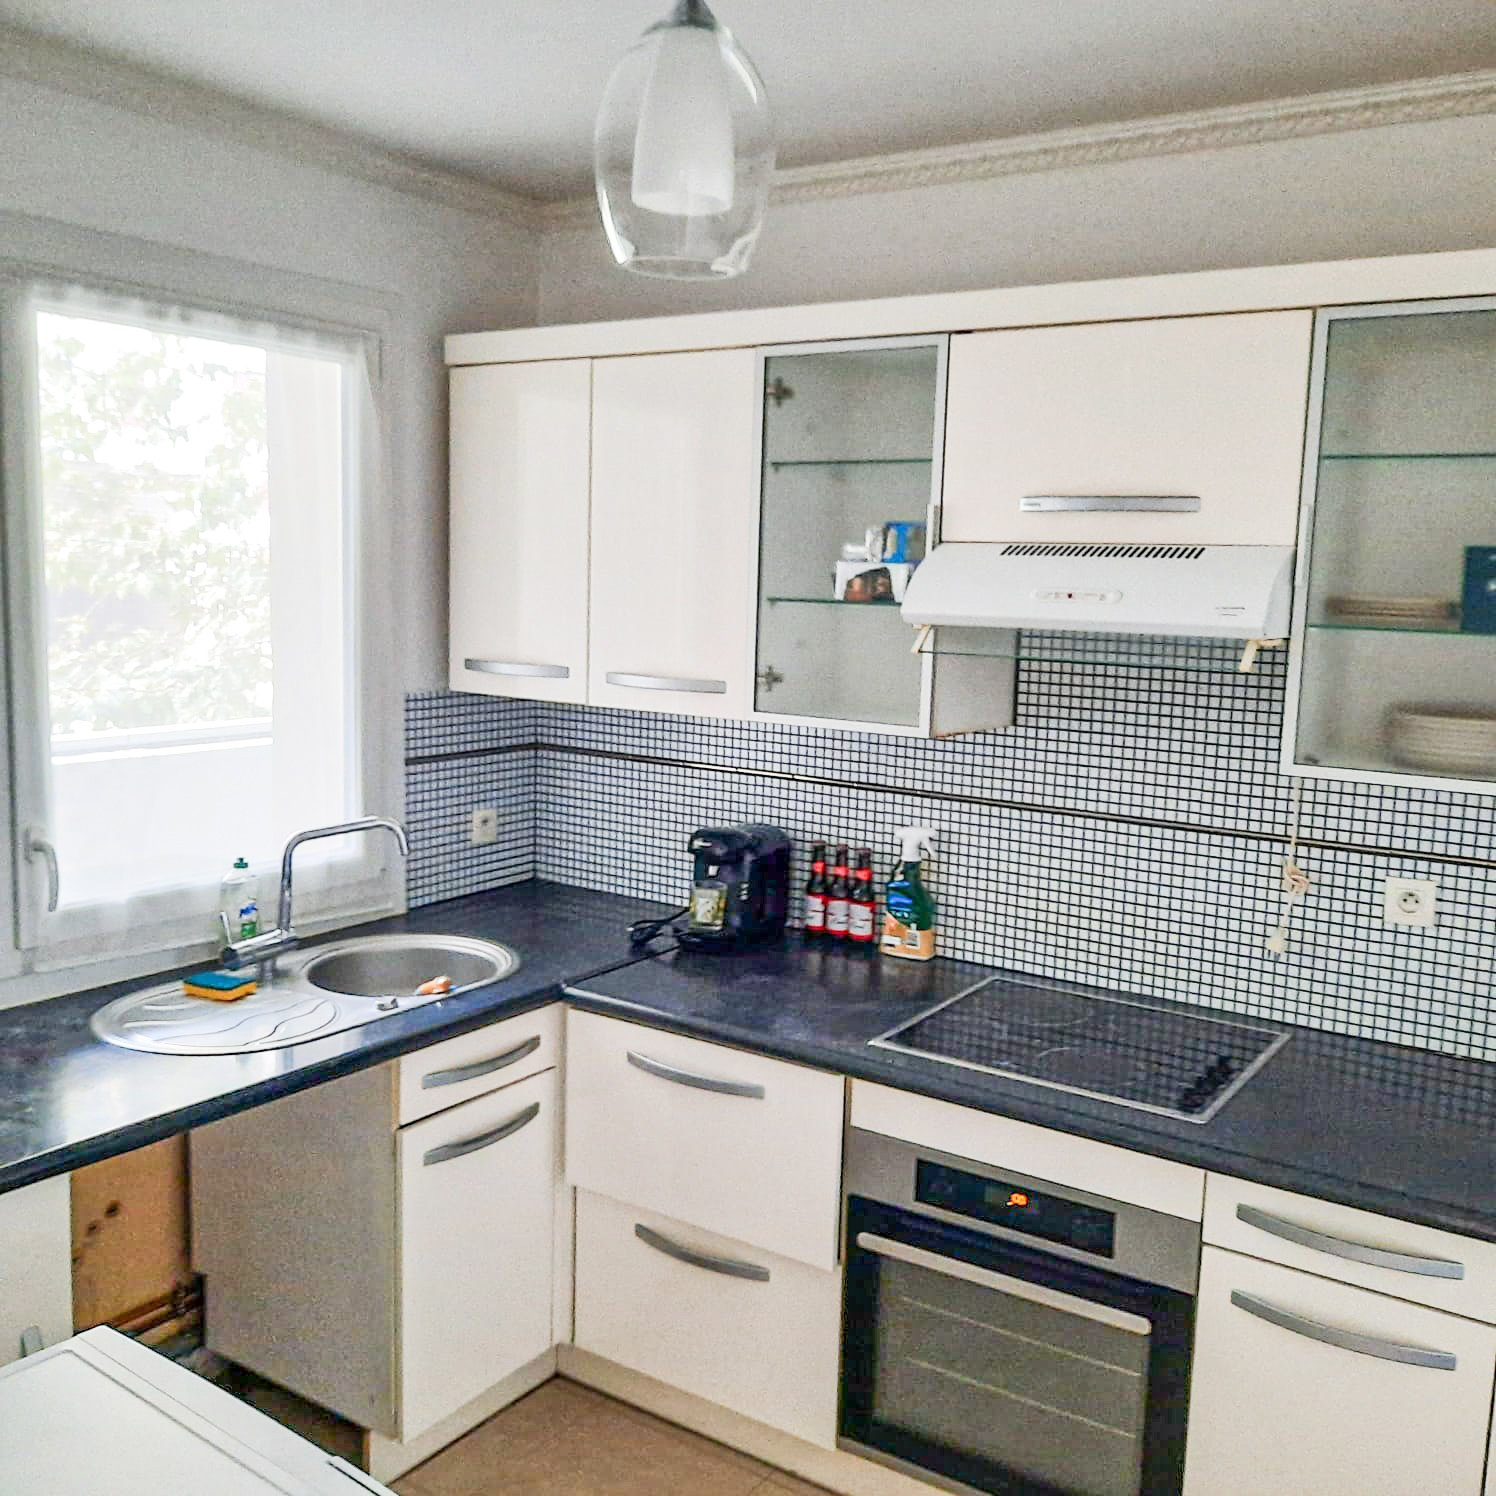 Location Appartement - Noisy-le-Grand